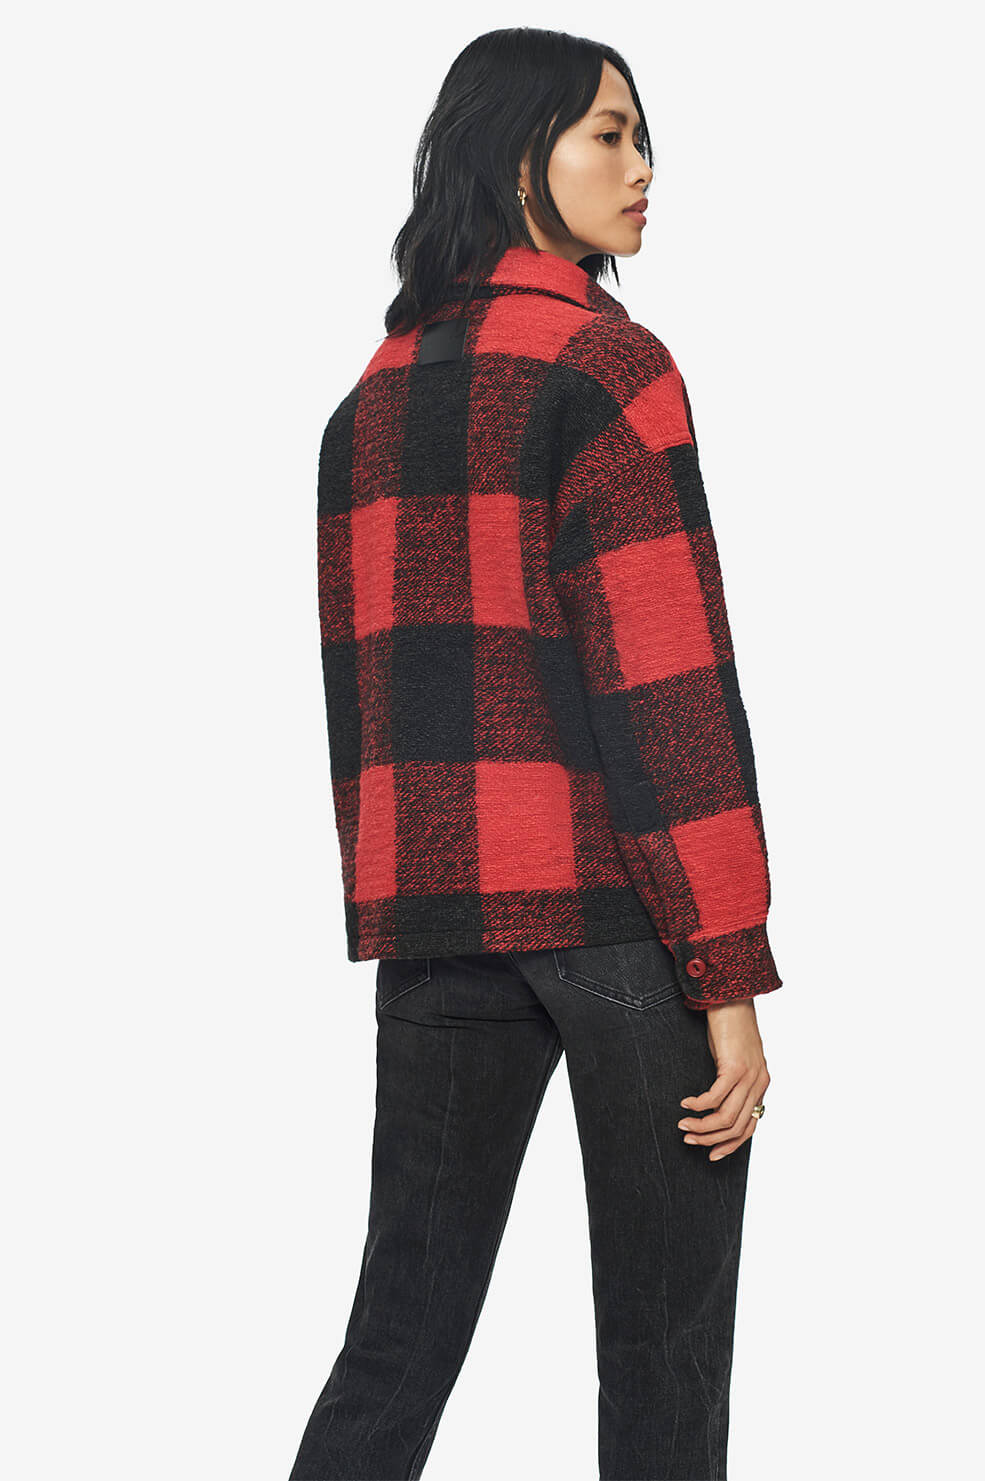 ANINE BING Bobbi Flannel Jacket - Red